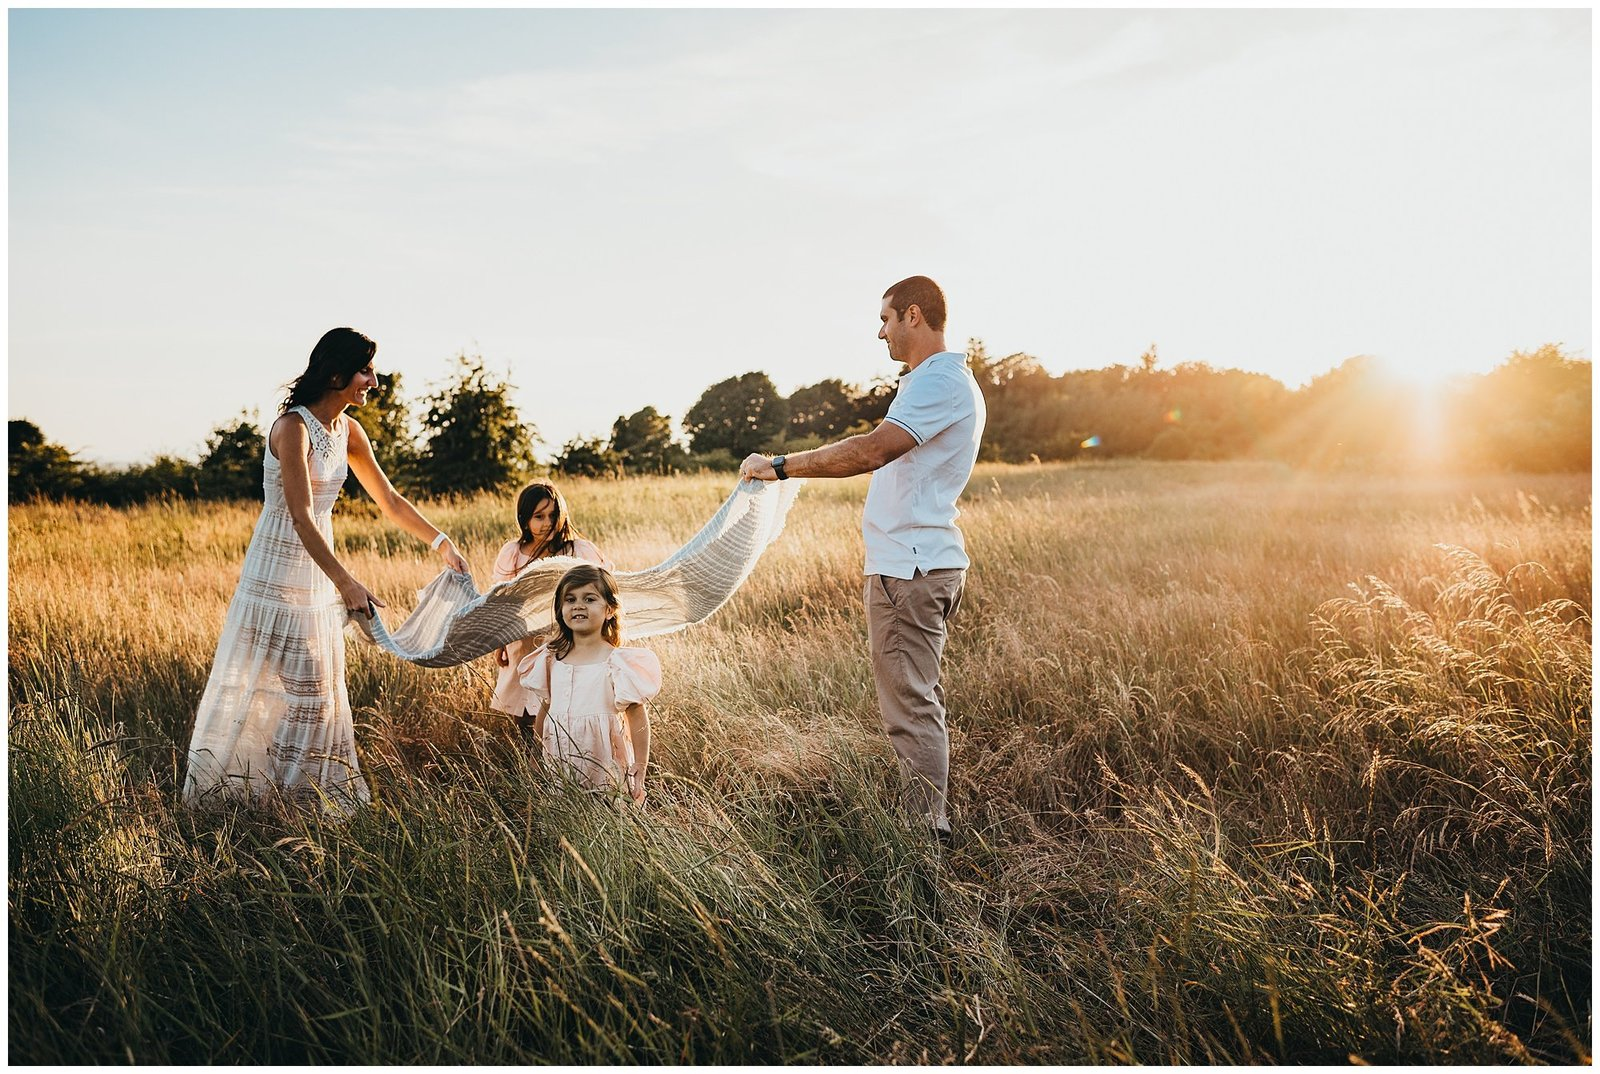 Family playing in field at sunset Emily Ann Photography Seattle Photographer